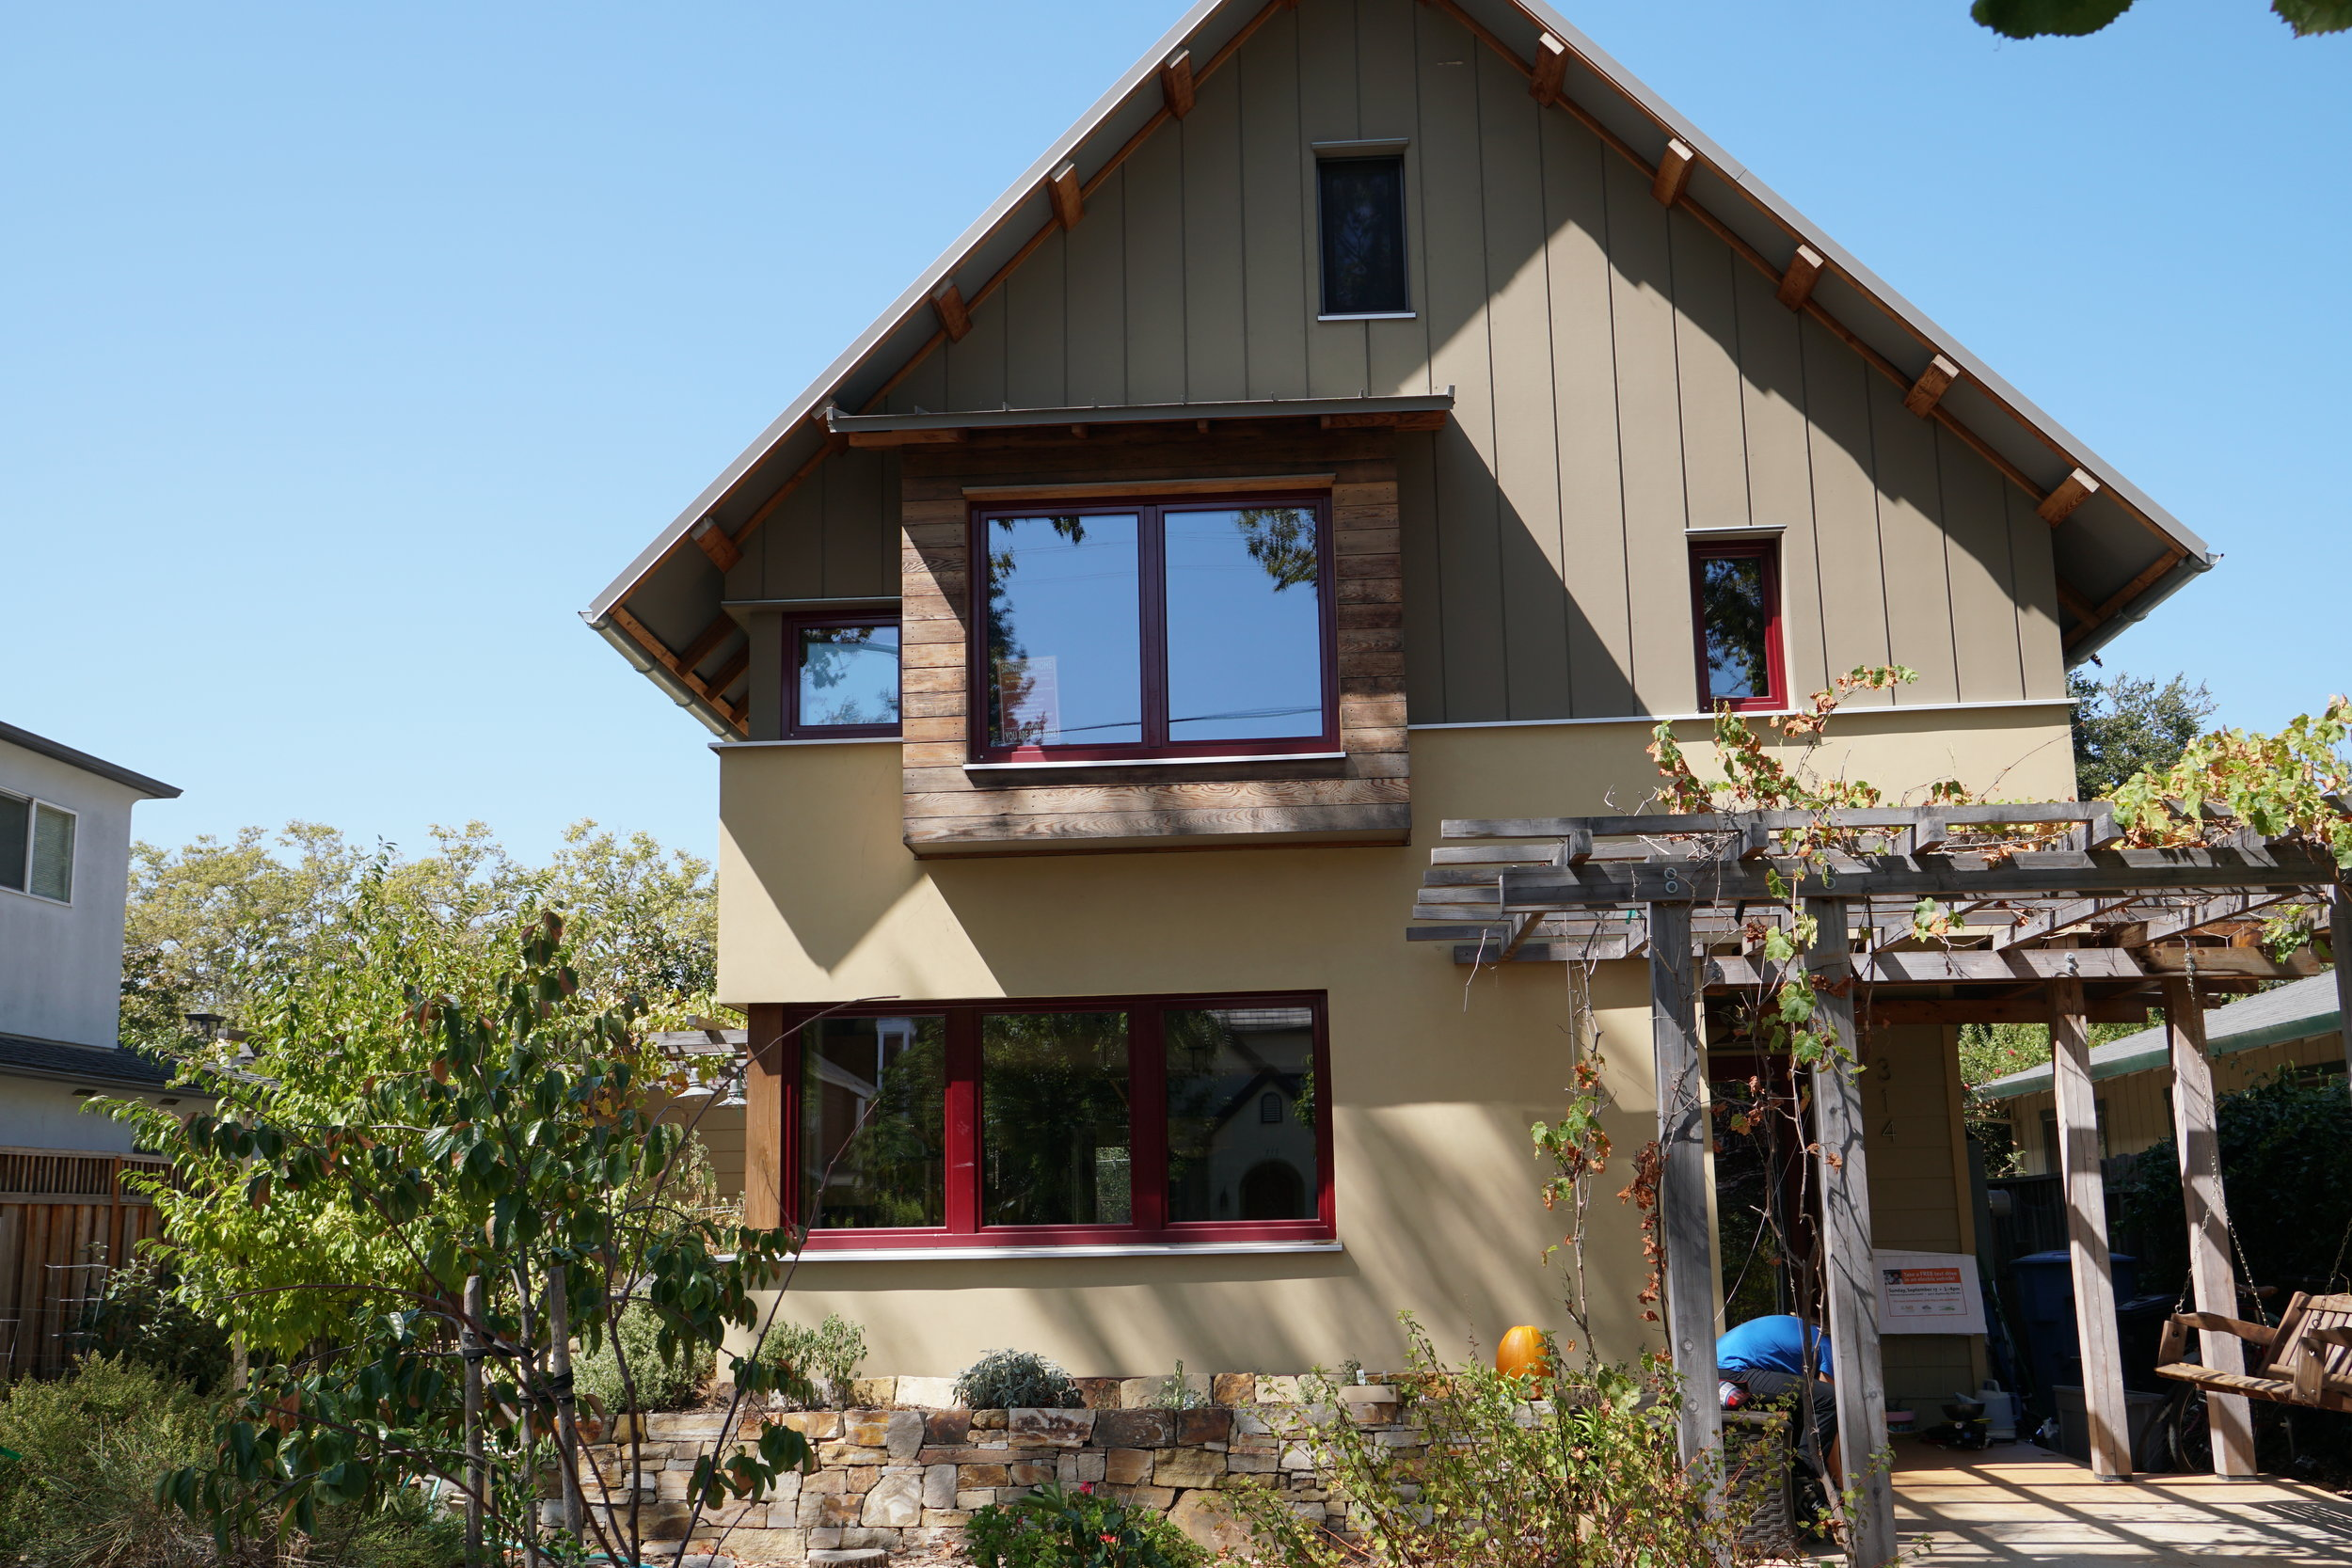 This LEED platinum, net zero energy, passive house uses approximately 80% less energy and water than conventional American homes, savings on bills and impact on the planet. More detail on the Palo Alto home on the   Project Green Home   website.